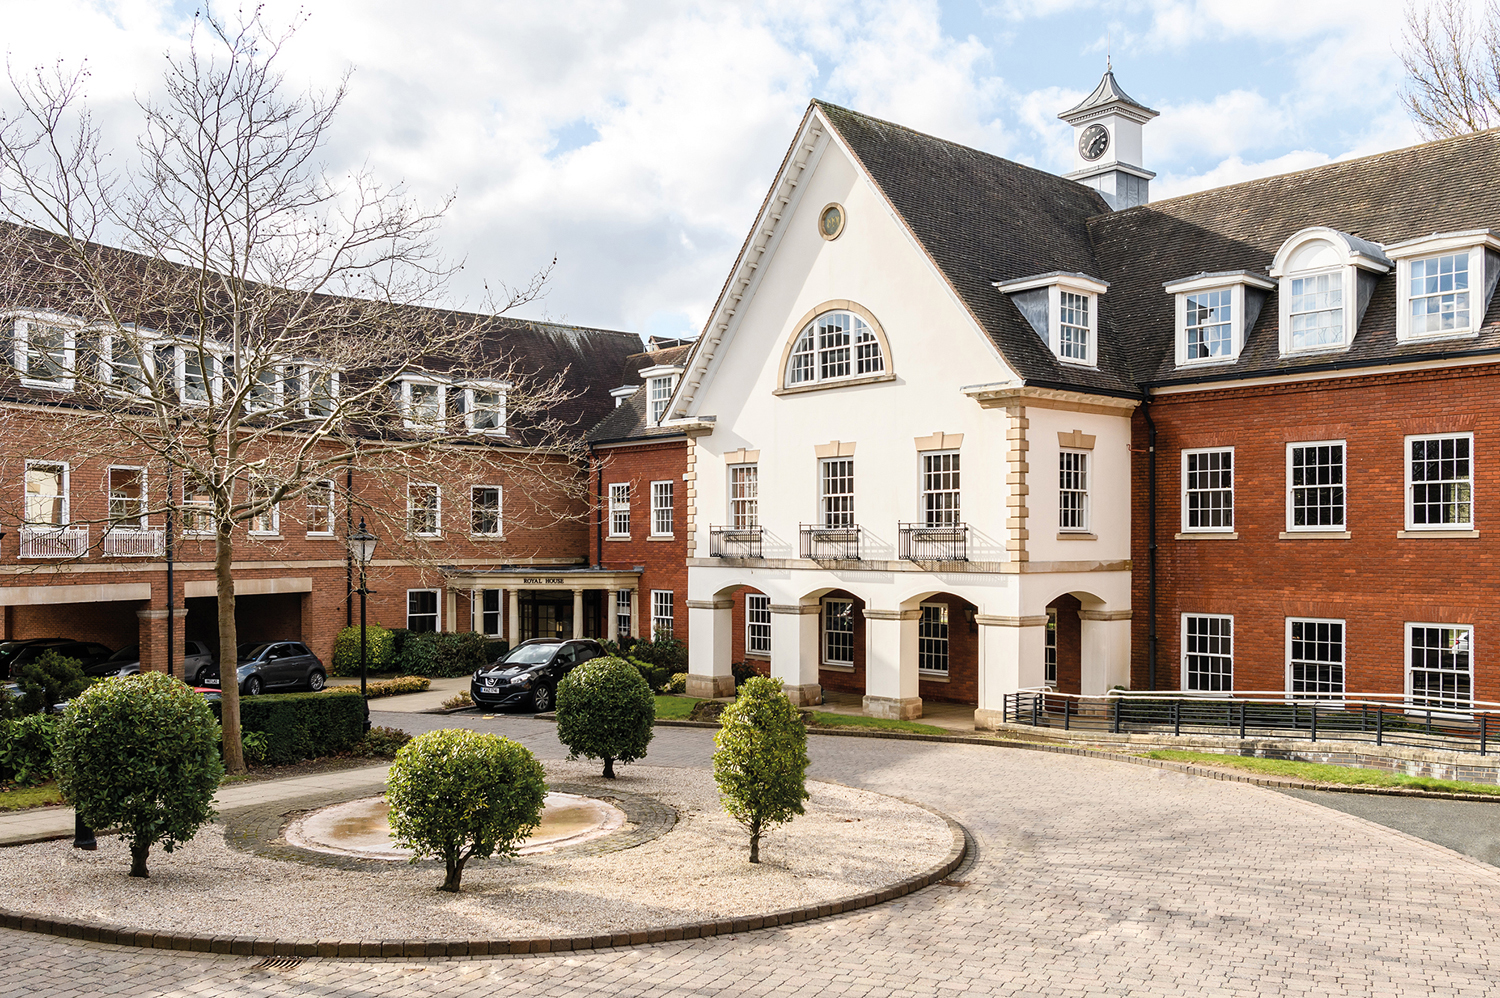 Elevate Property Group acquires Princes Gate in Solihull